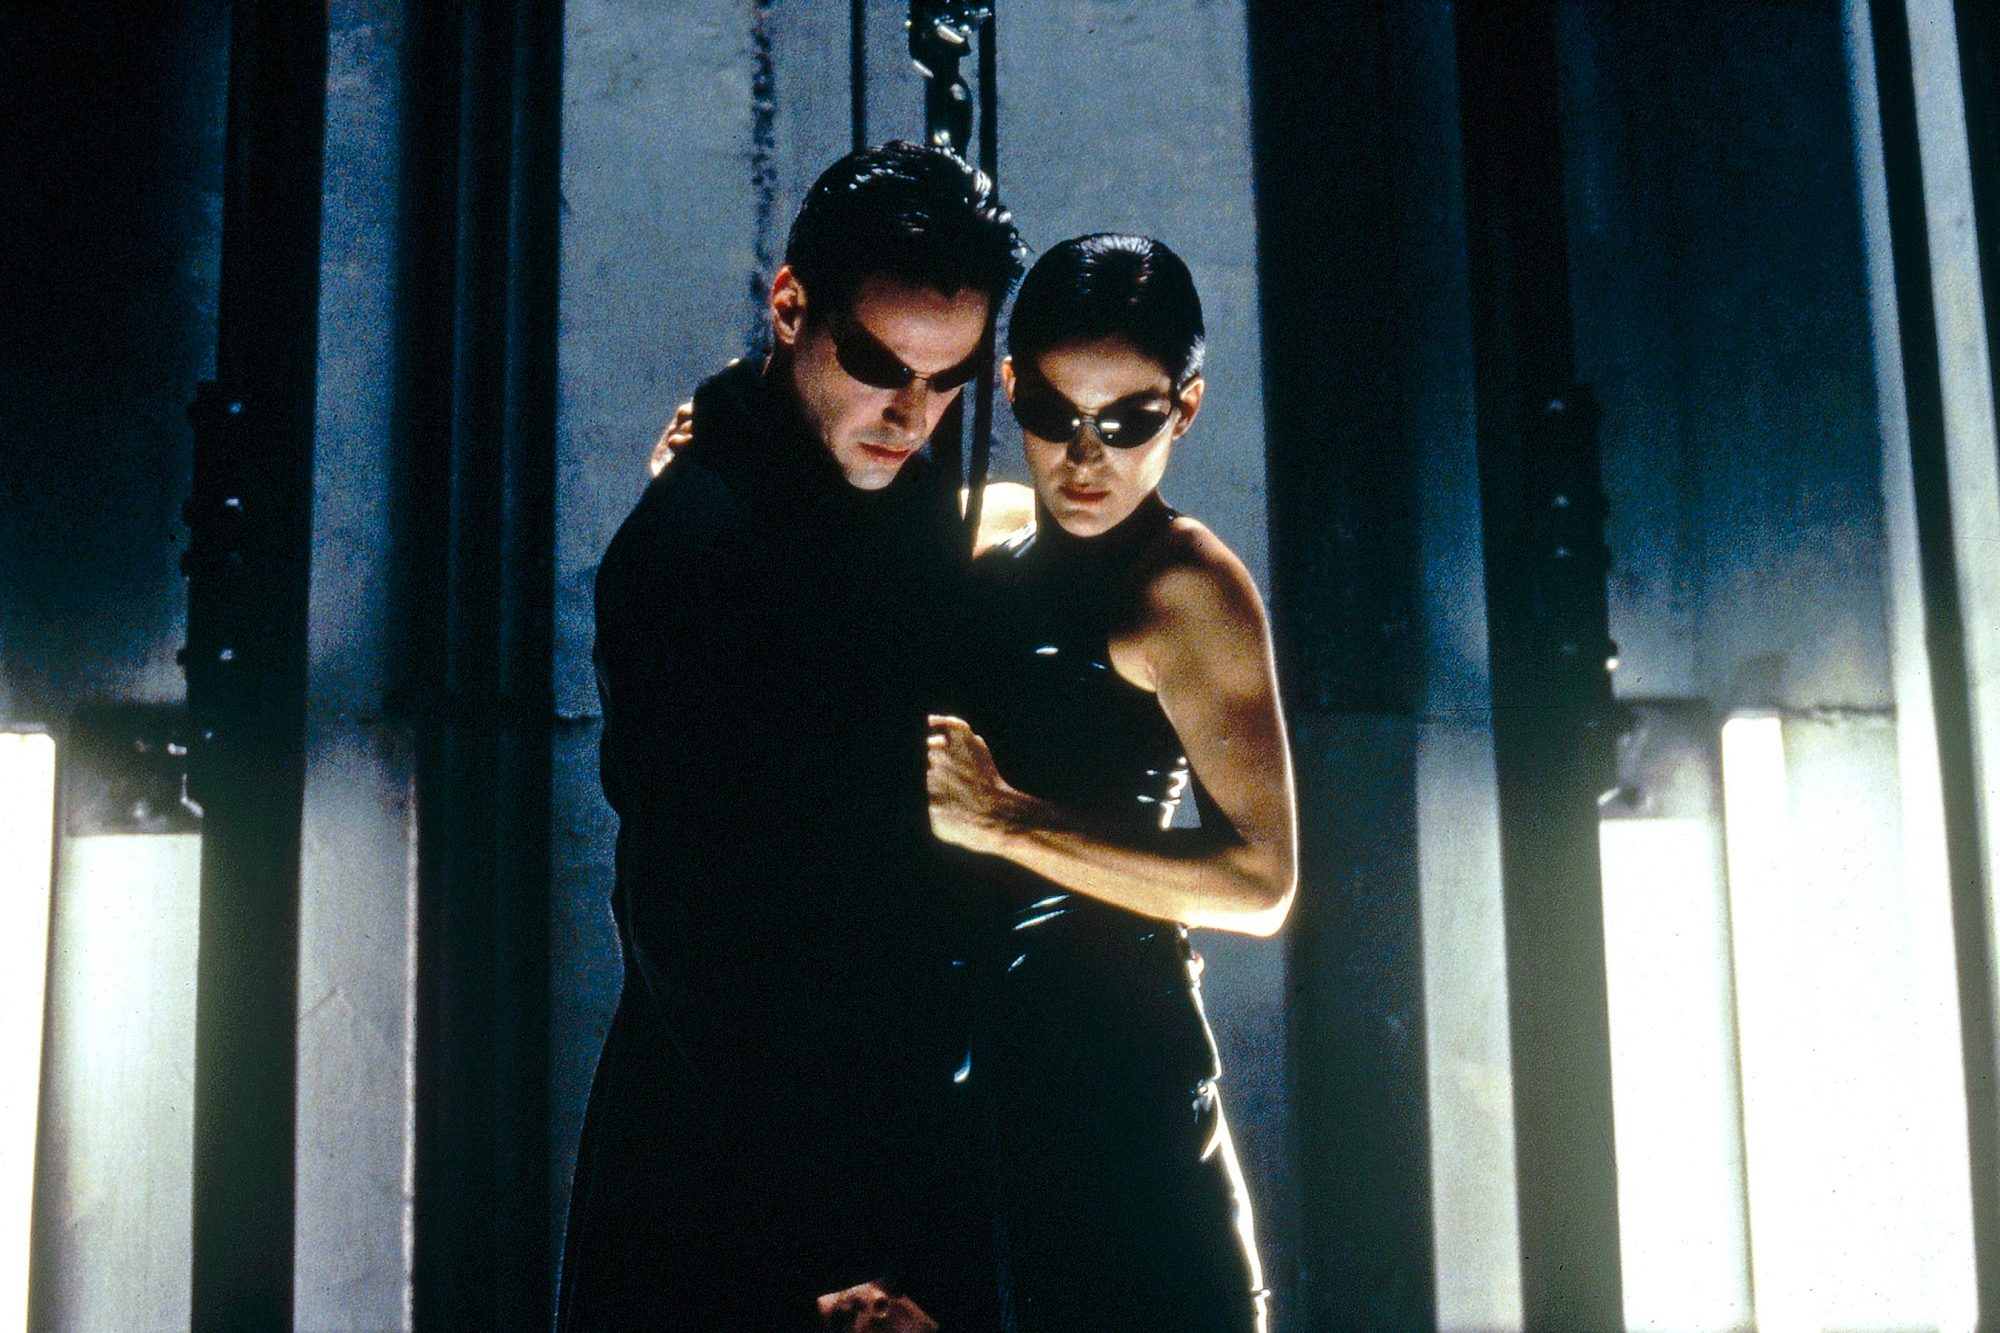 The Matrix, 1999Keanu Reeves and Carrie-Anne Moss